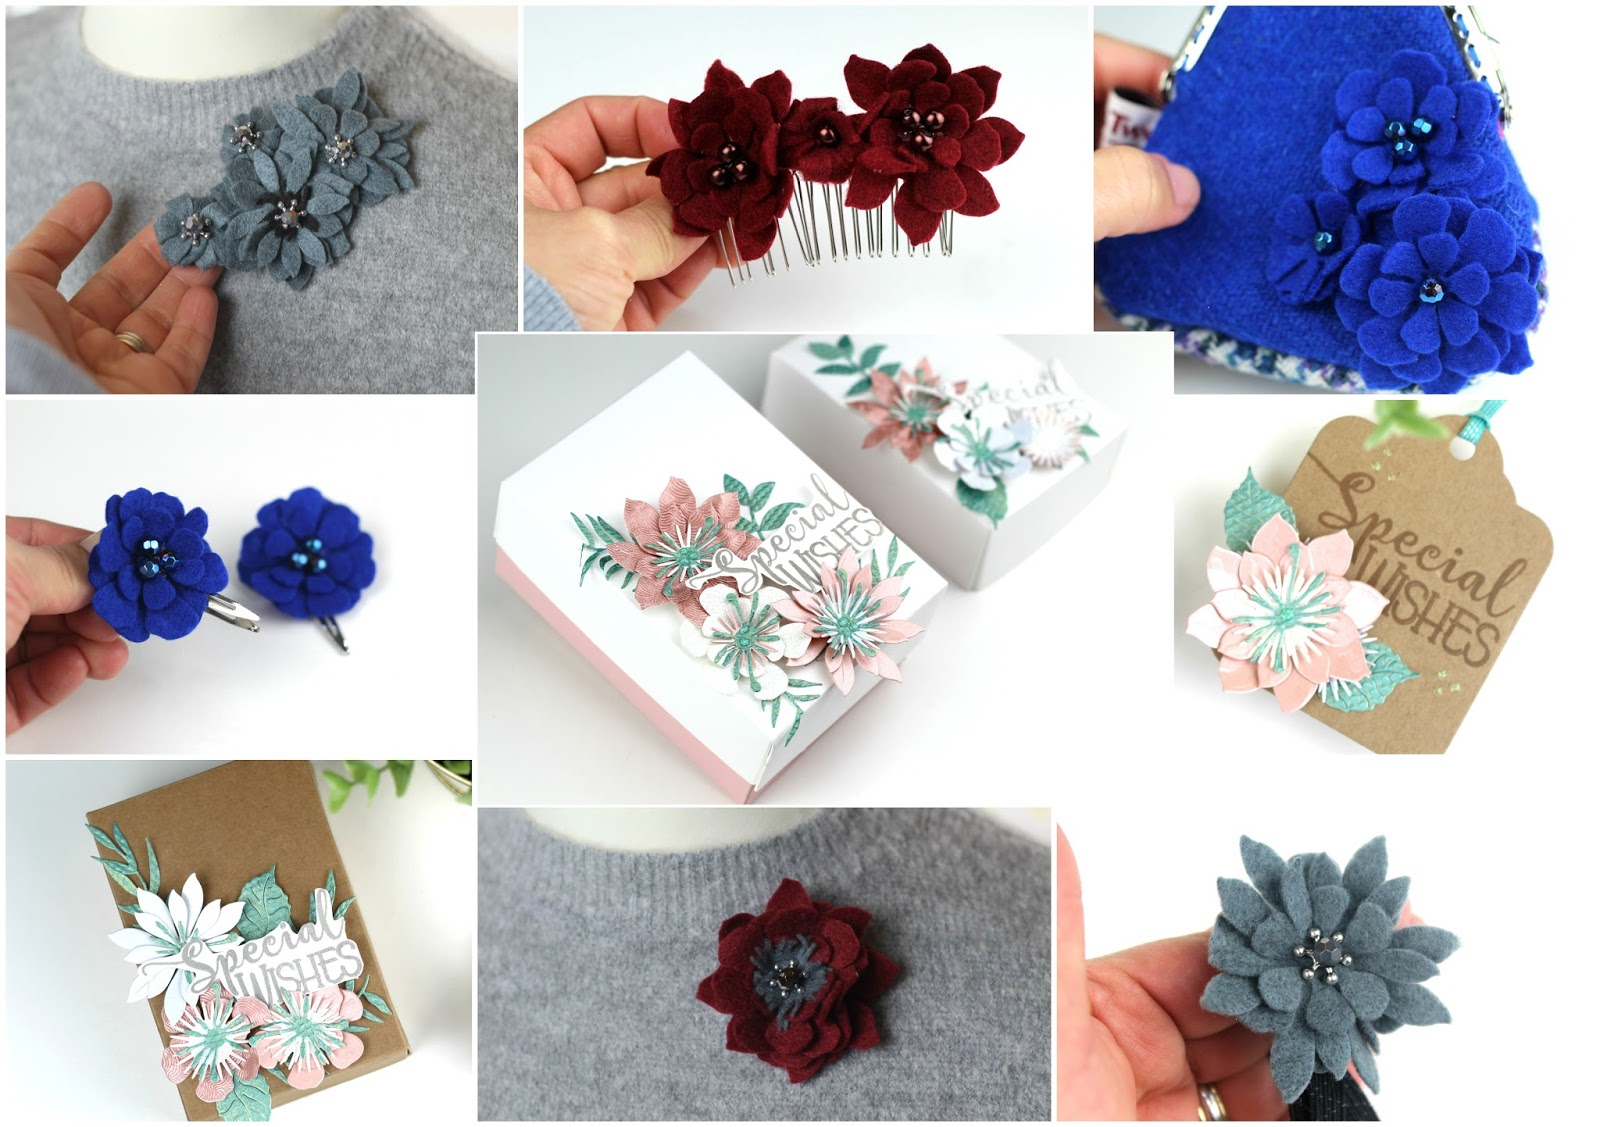 9 easy ideas with floral dies| Felt -Beads and Paper Flowers Tutorial